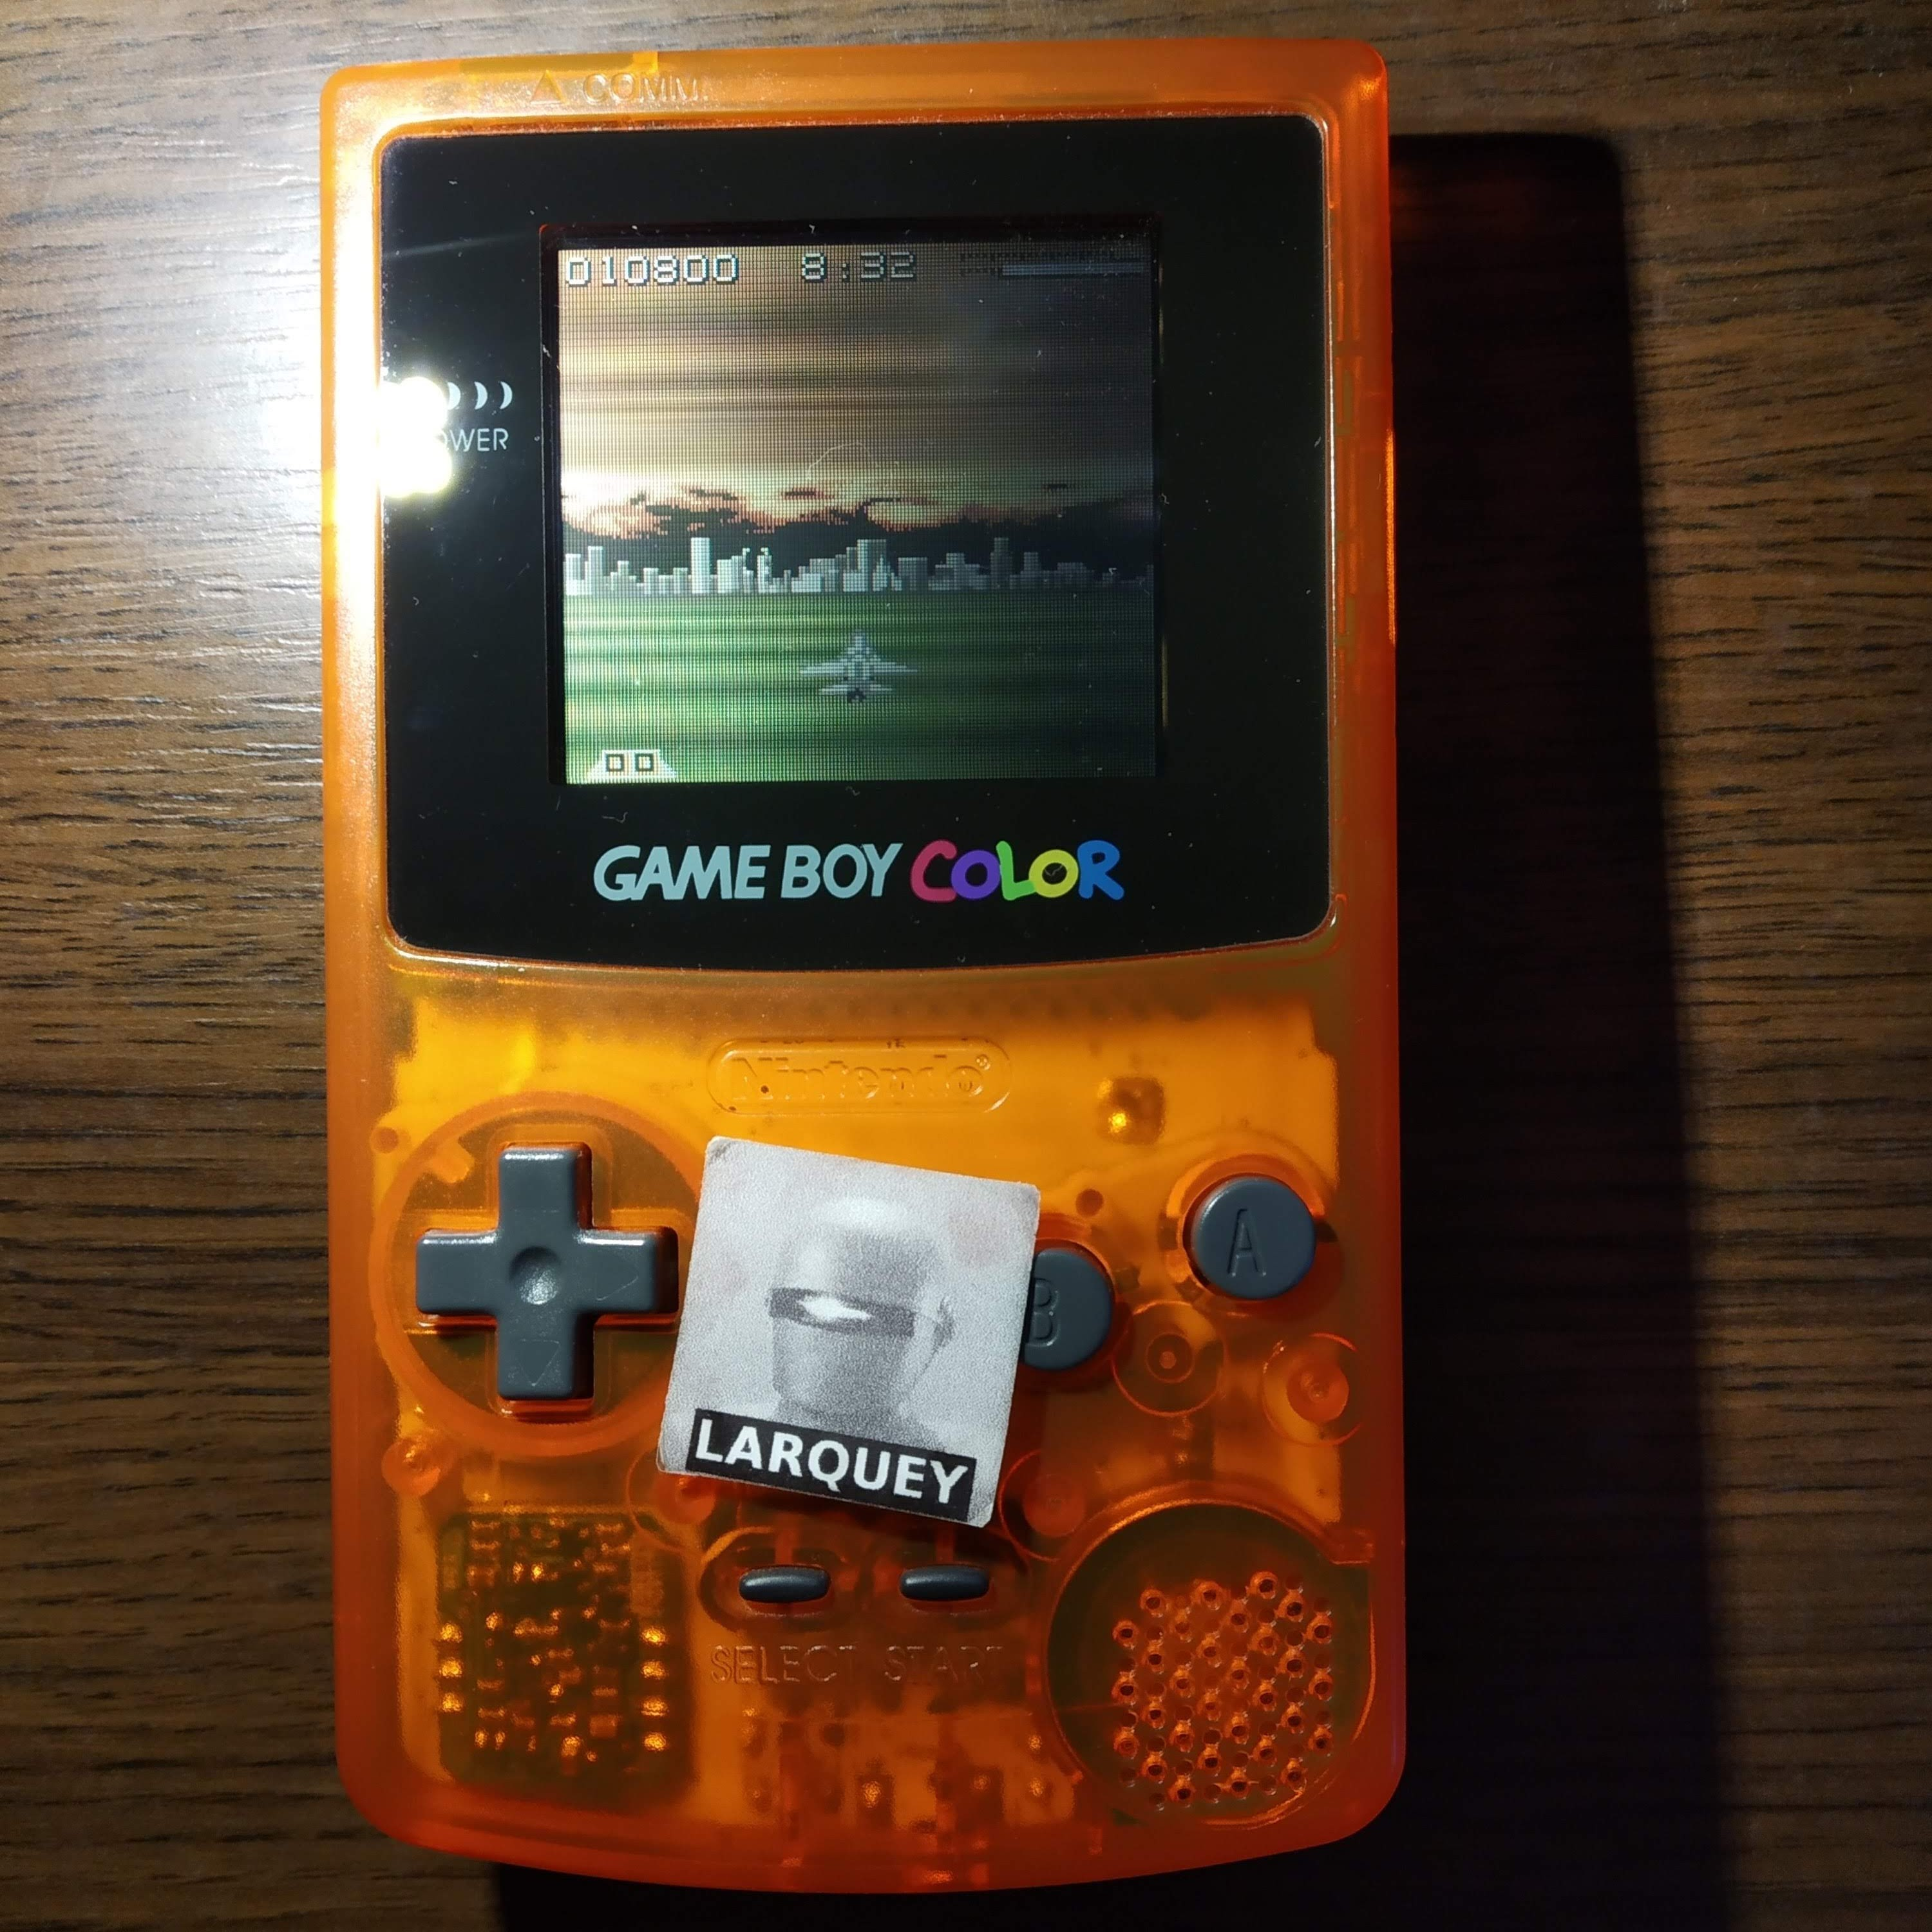 Larquey: AirForce Delta [Hard] (Game Boy Color) 10,800 points on 2020-07-23 11:52:04